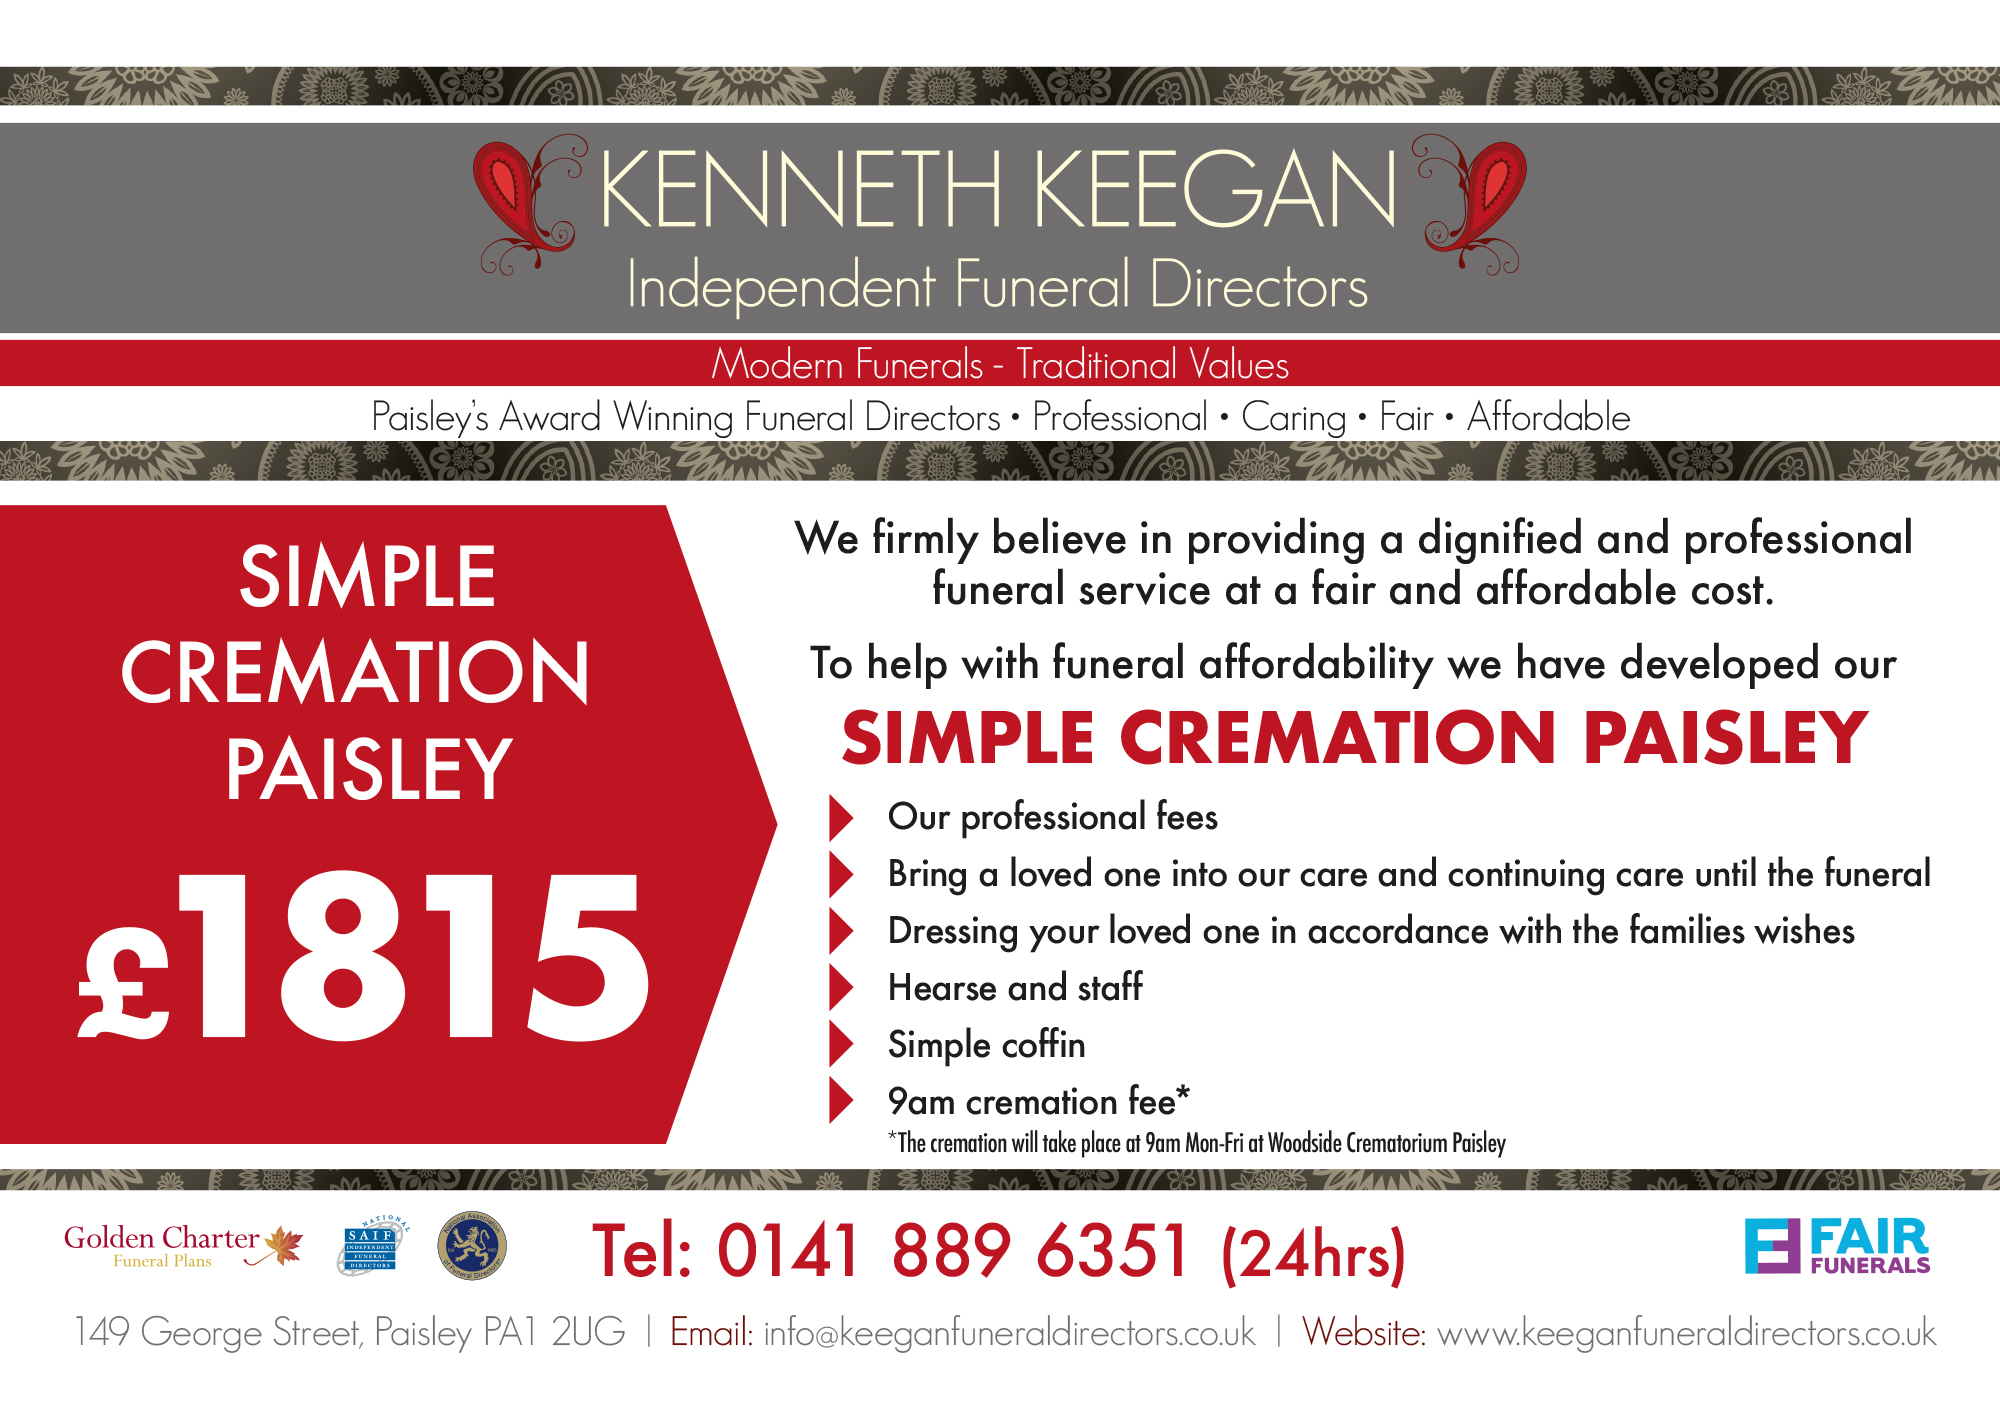 Kenneth-Keegan-Simple-Cremation-Paisley-A4L-11-10-18